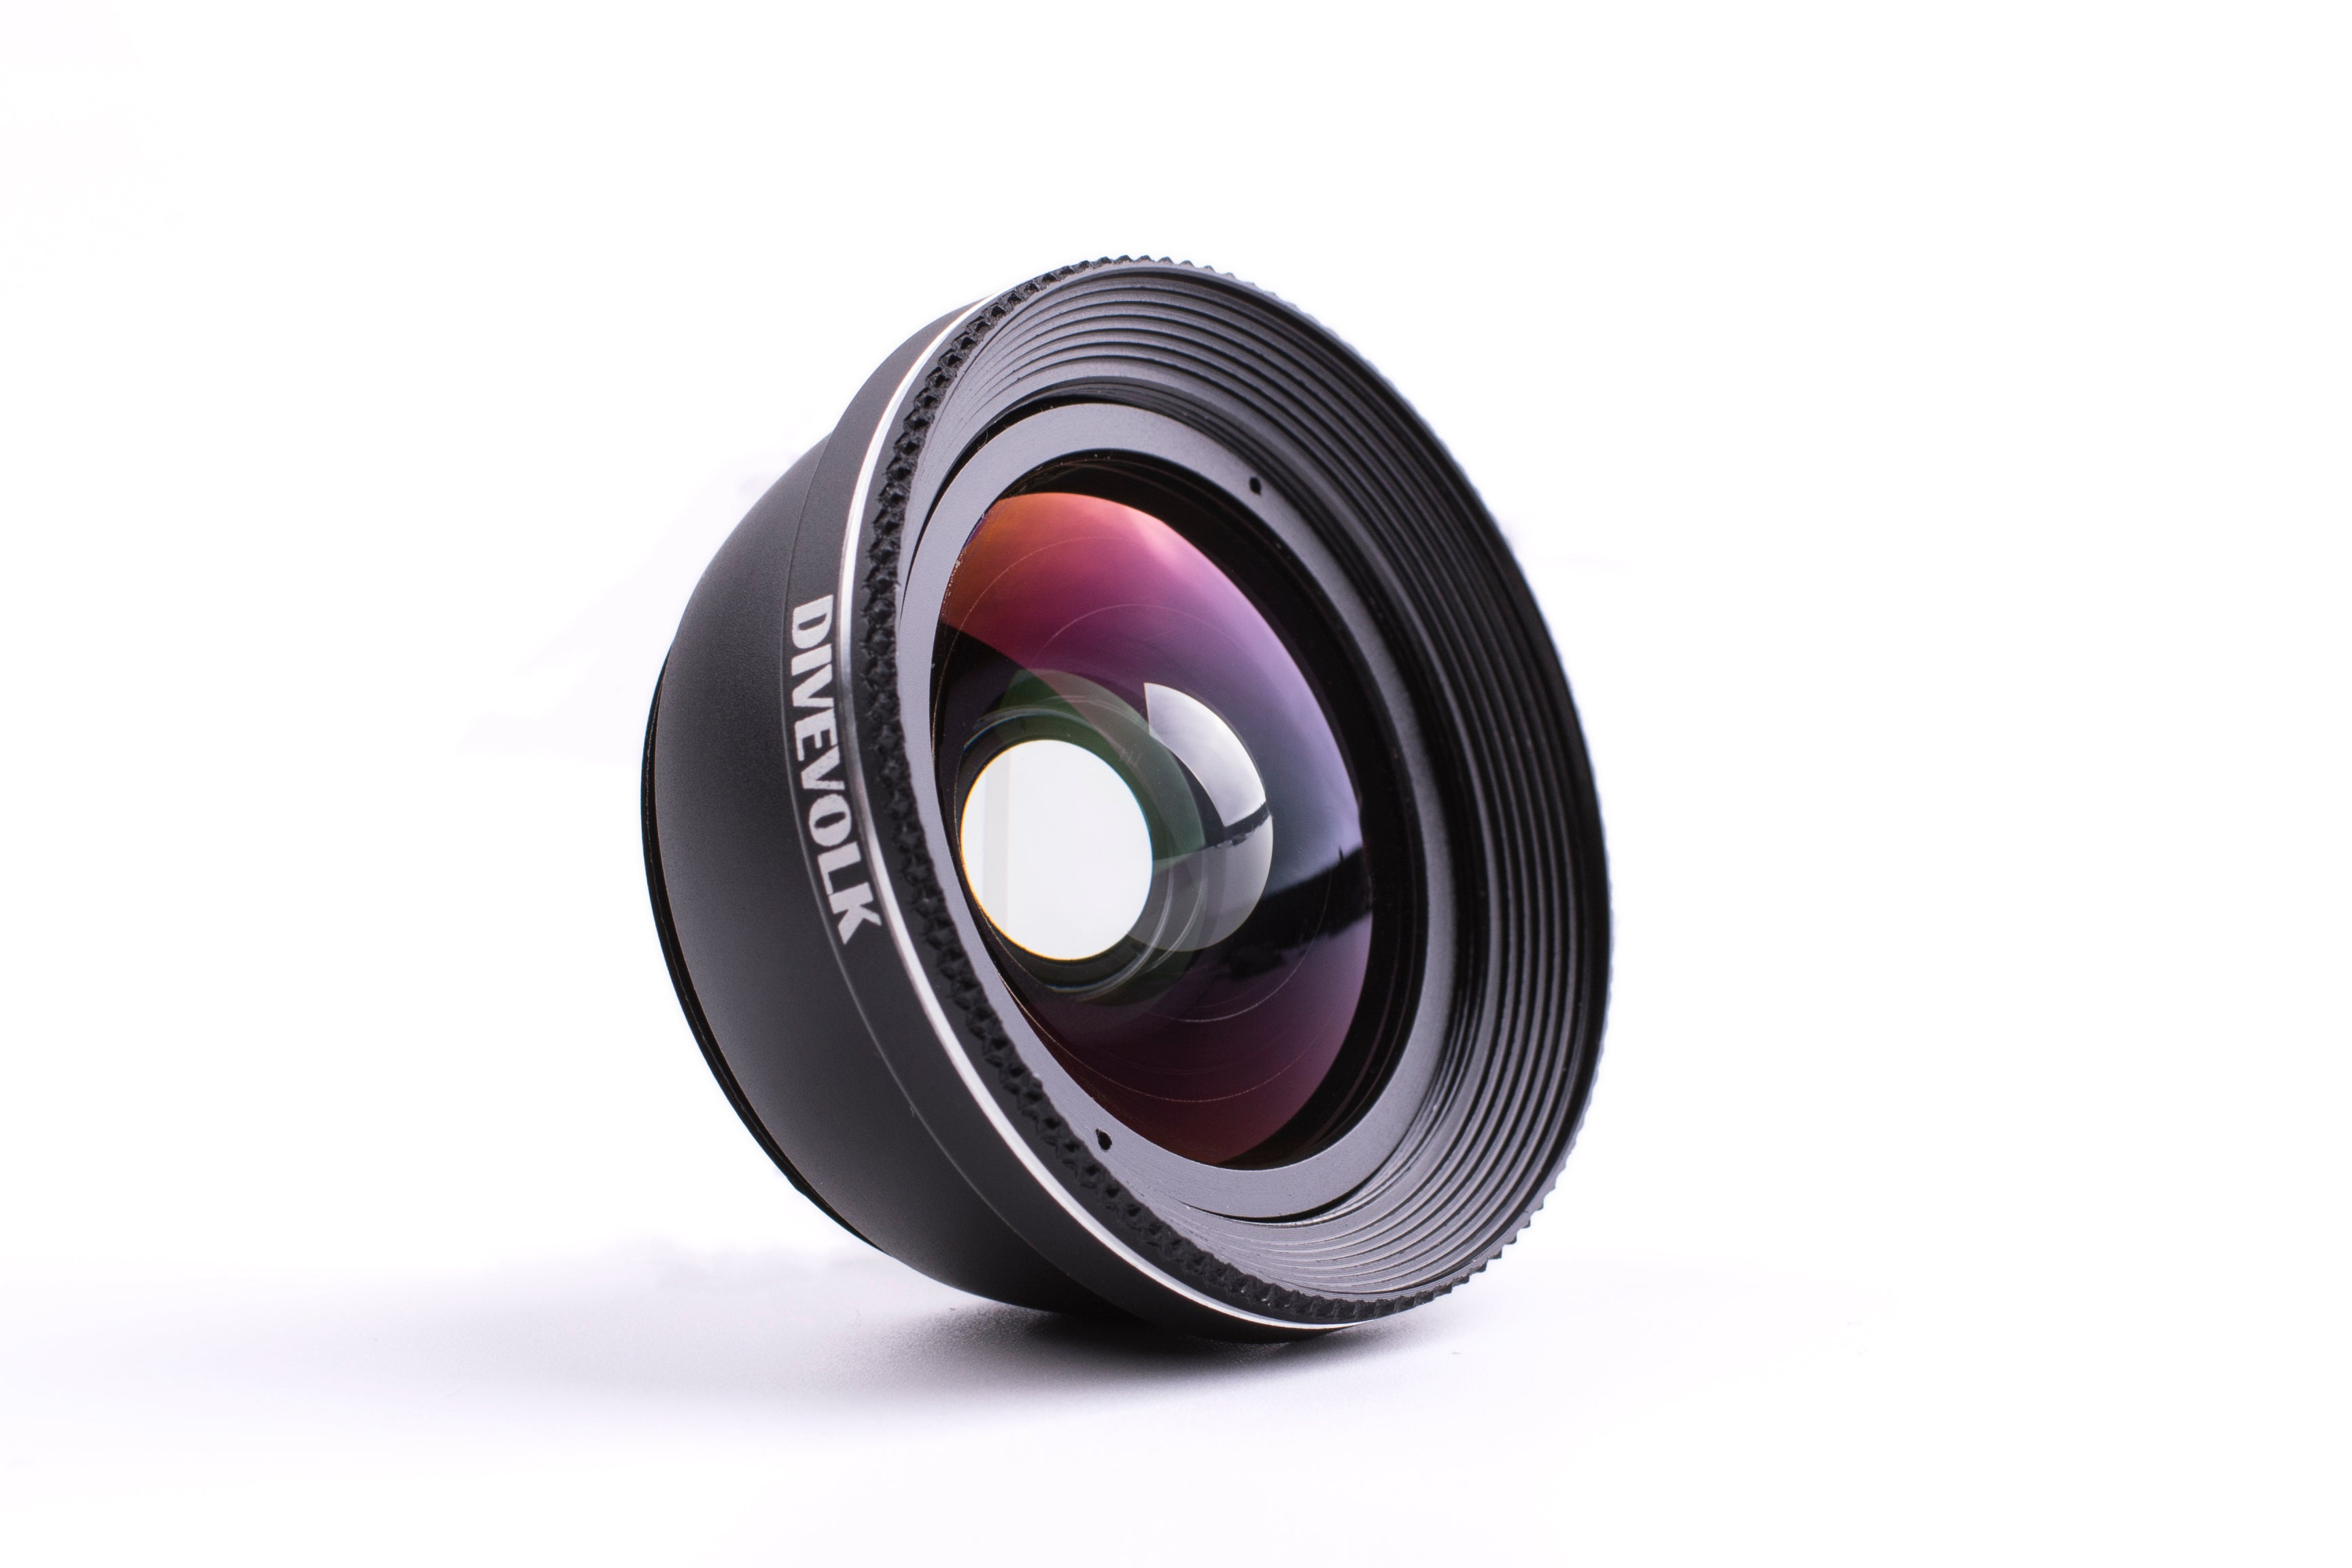 DiveVolk SeaLense Wide Angle Wet Lens for SeaTouch PRO, 105 degree underwater